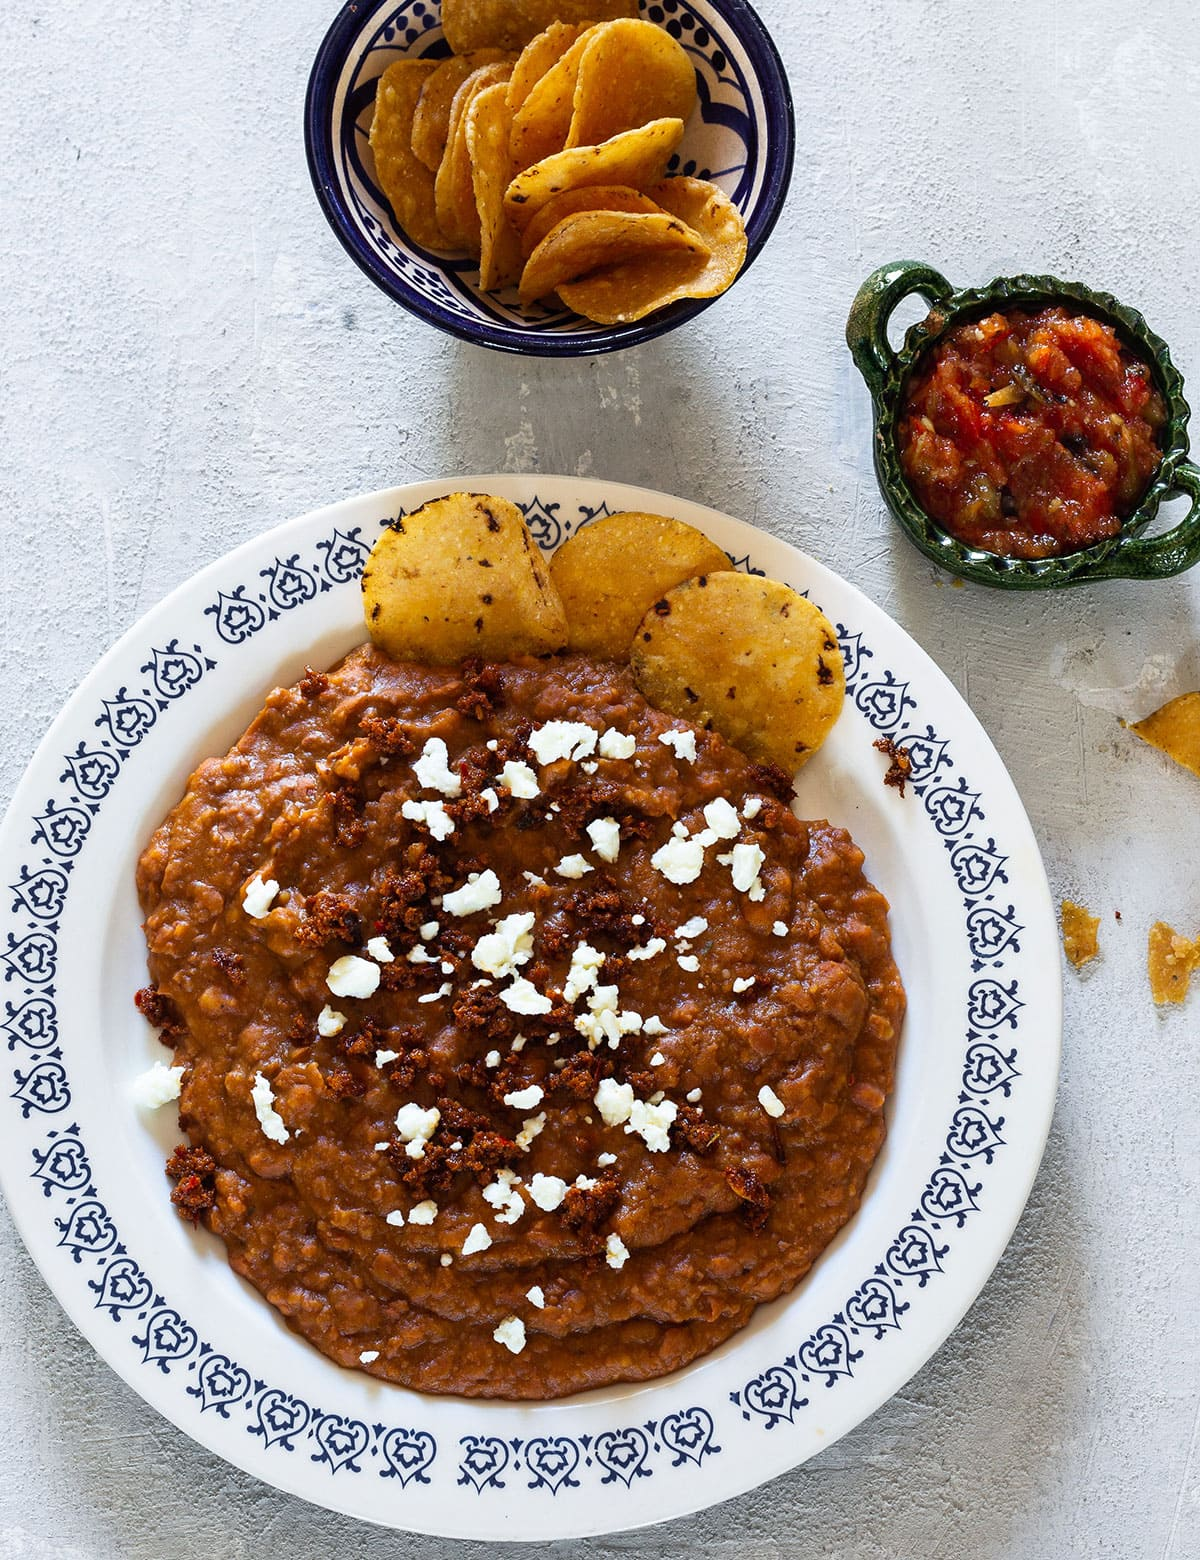 Refried beans with chorizo.